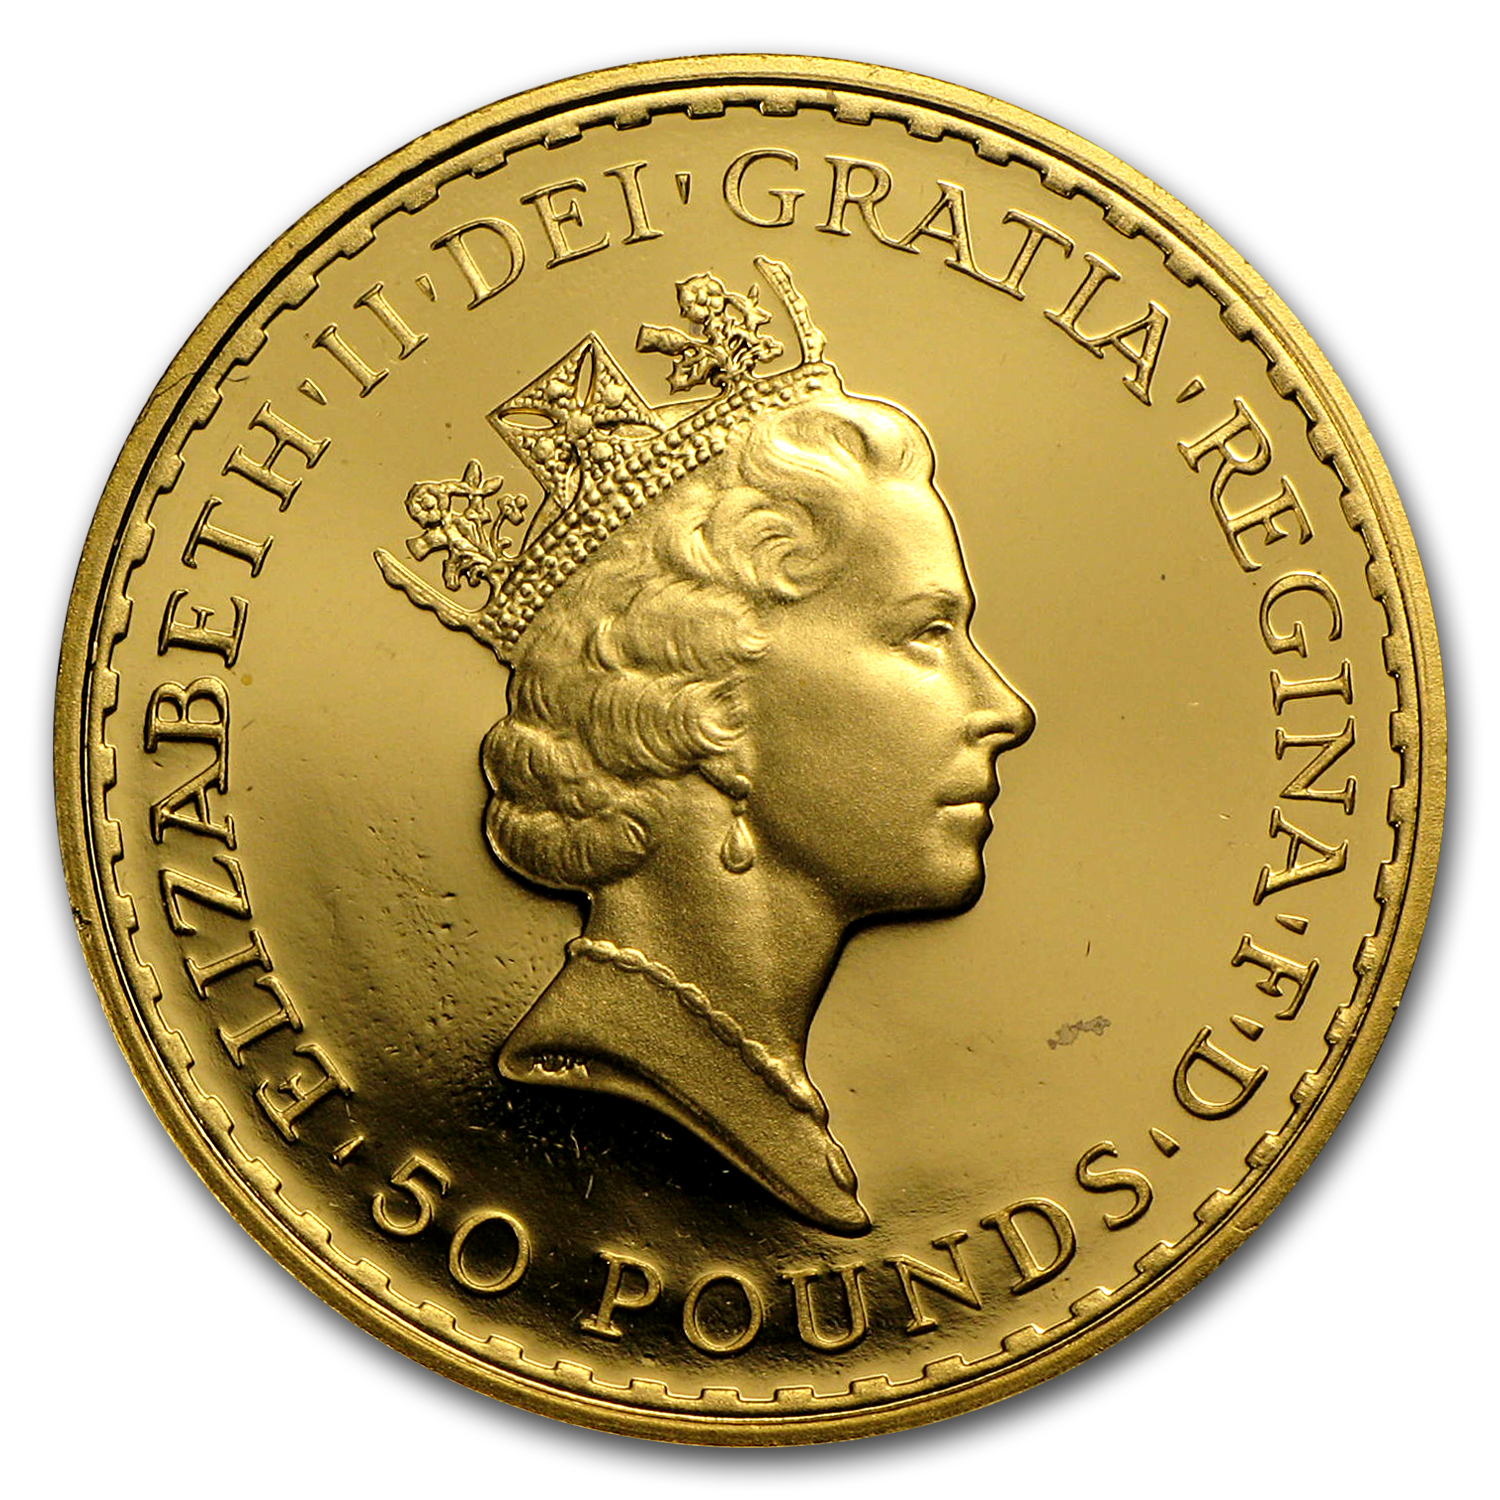 1996 1/2 oz Proof Gold Britannia